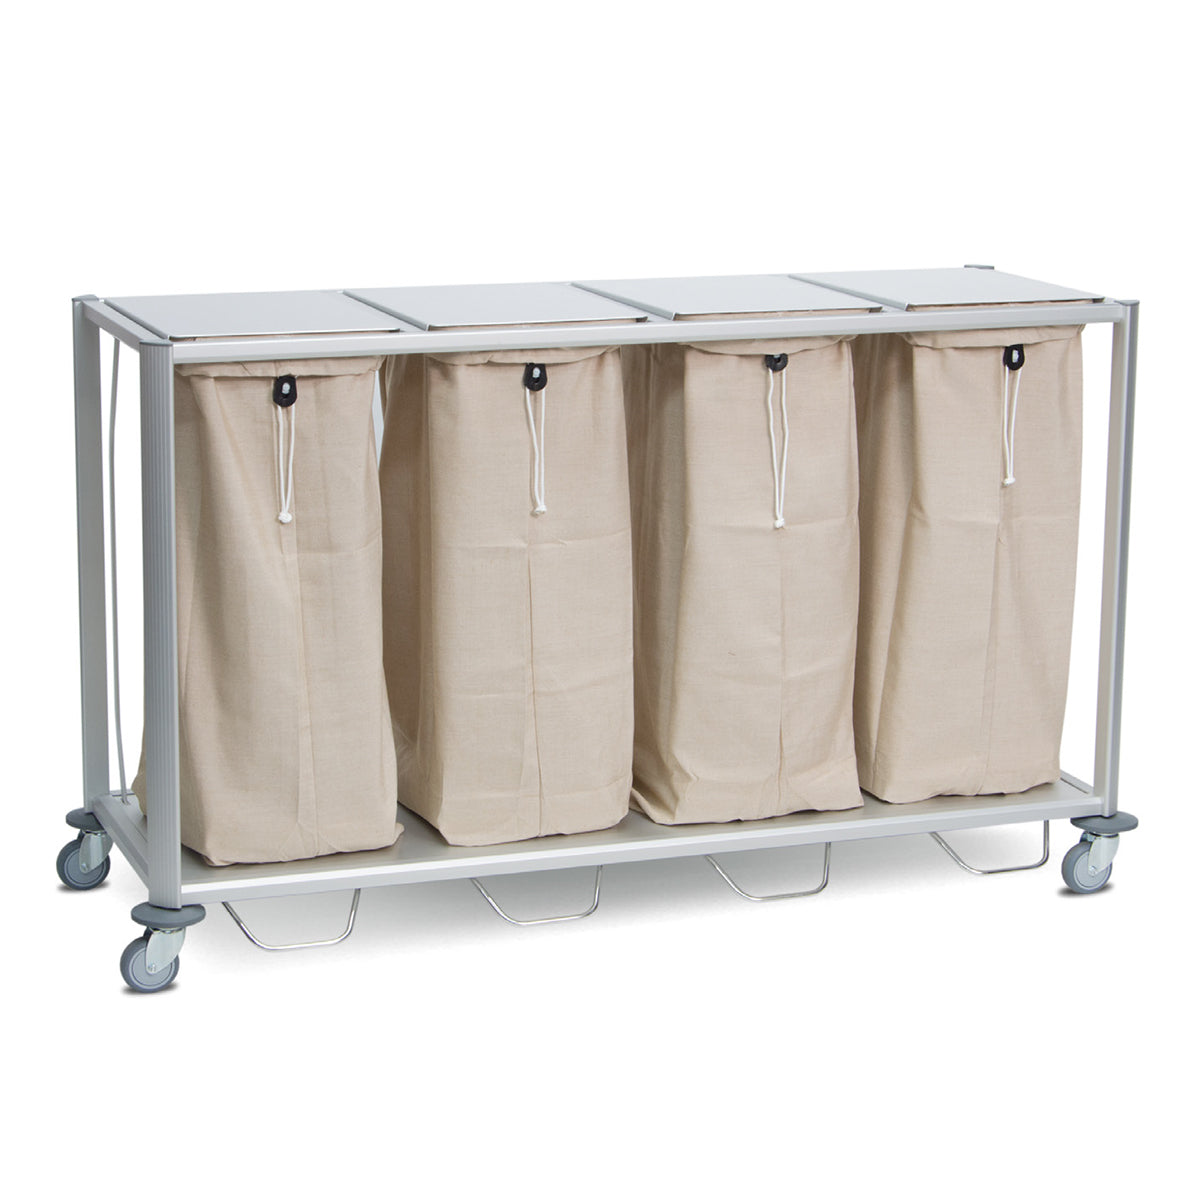 Protea 80 Quattro Laundry & Cleaning Trolley